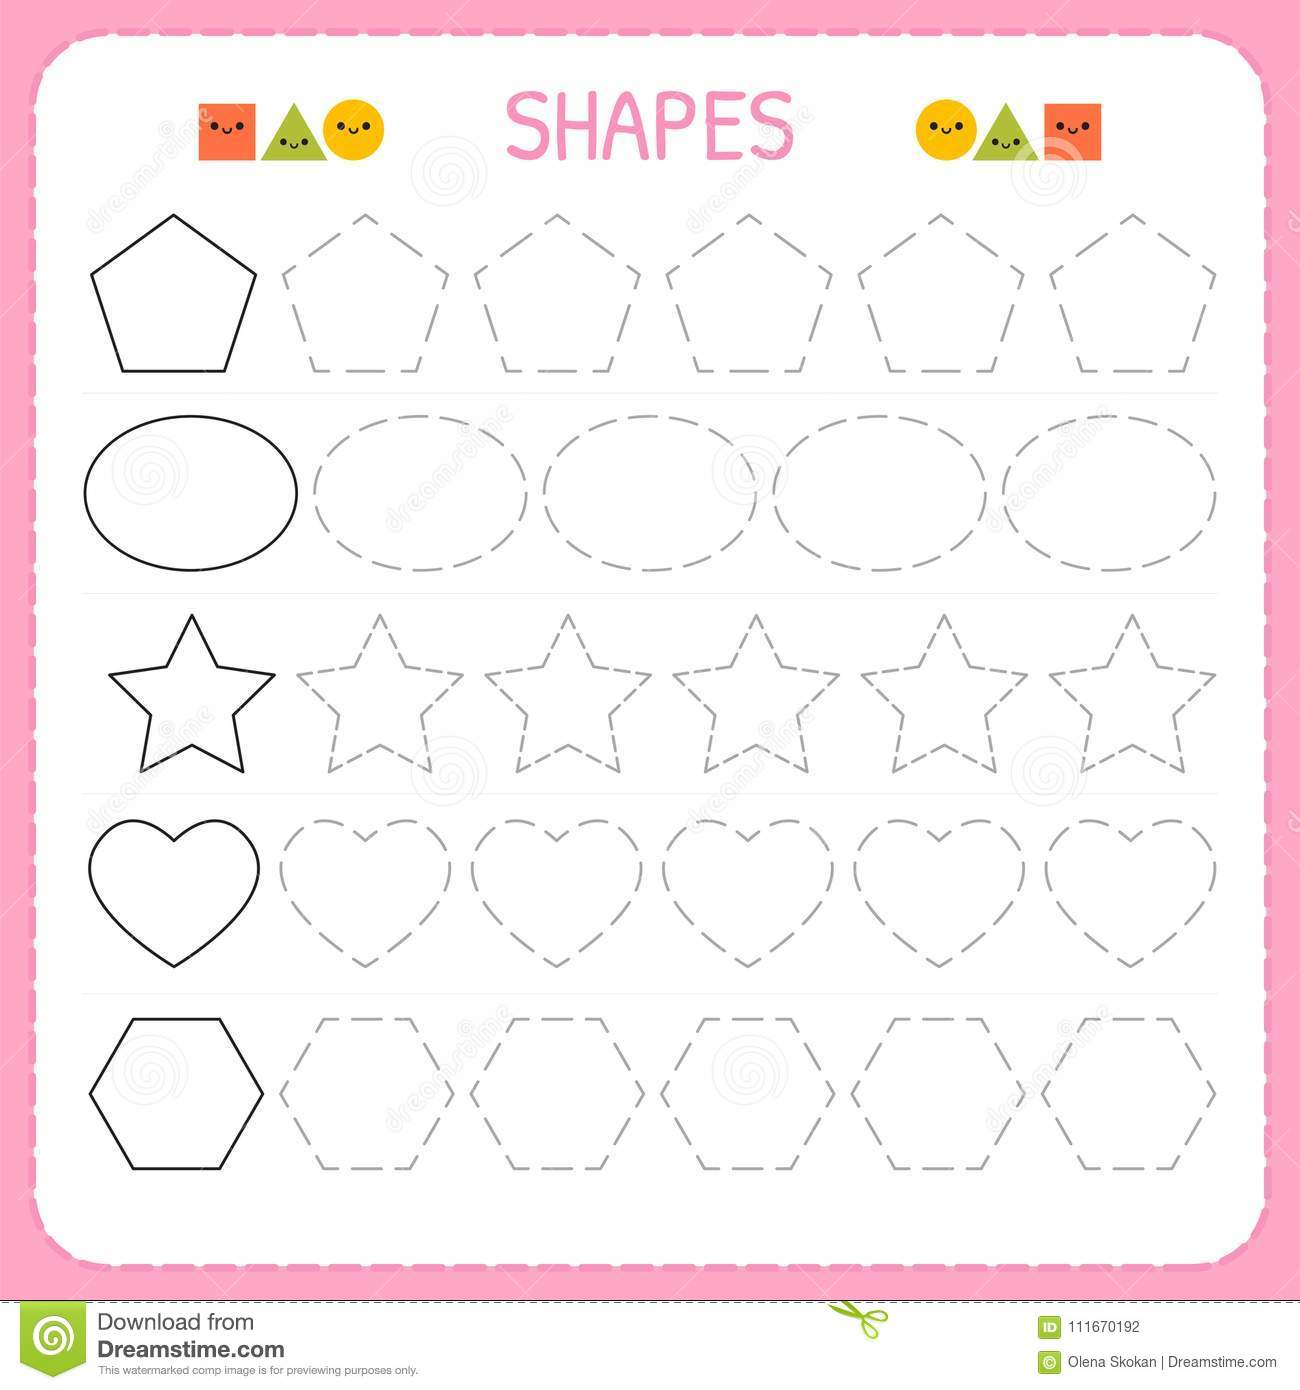 Learn Shapes And Geometric Figures Preschool Or Kindergarten Worksheet For Practicing Motor